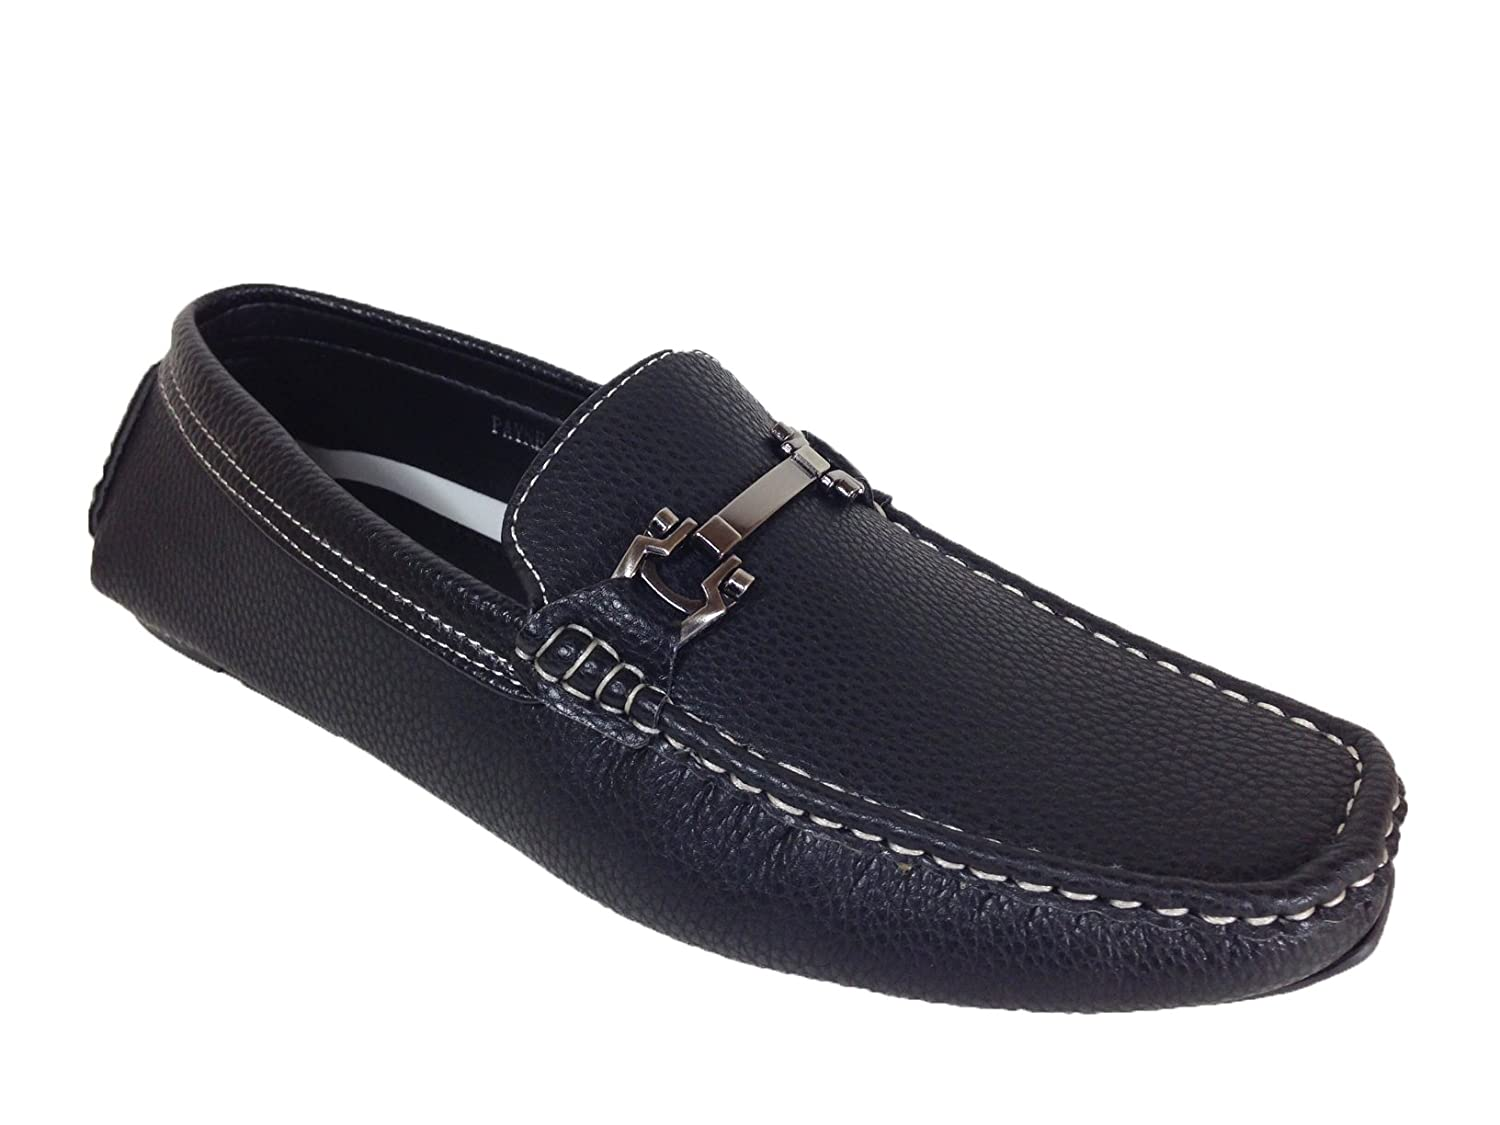 Brixton Men's Casual Light Weight Horse Bit Buckle Driving Moccasins Comfortable Driver's Loafers Shoes (Vipfootwear)